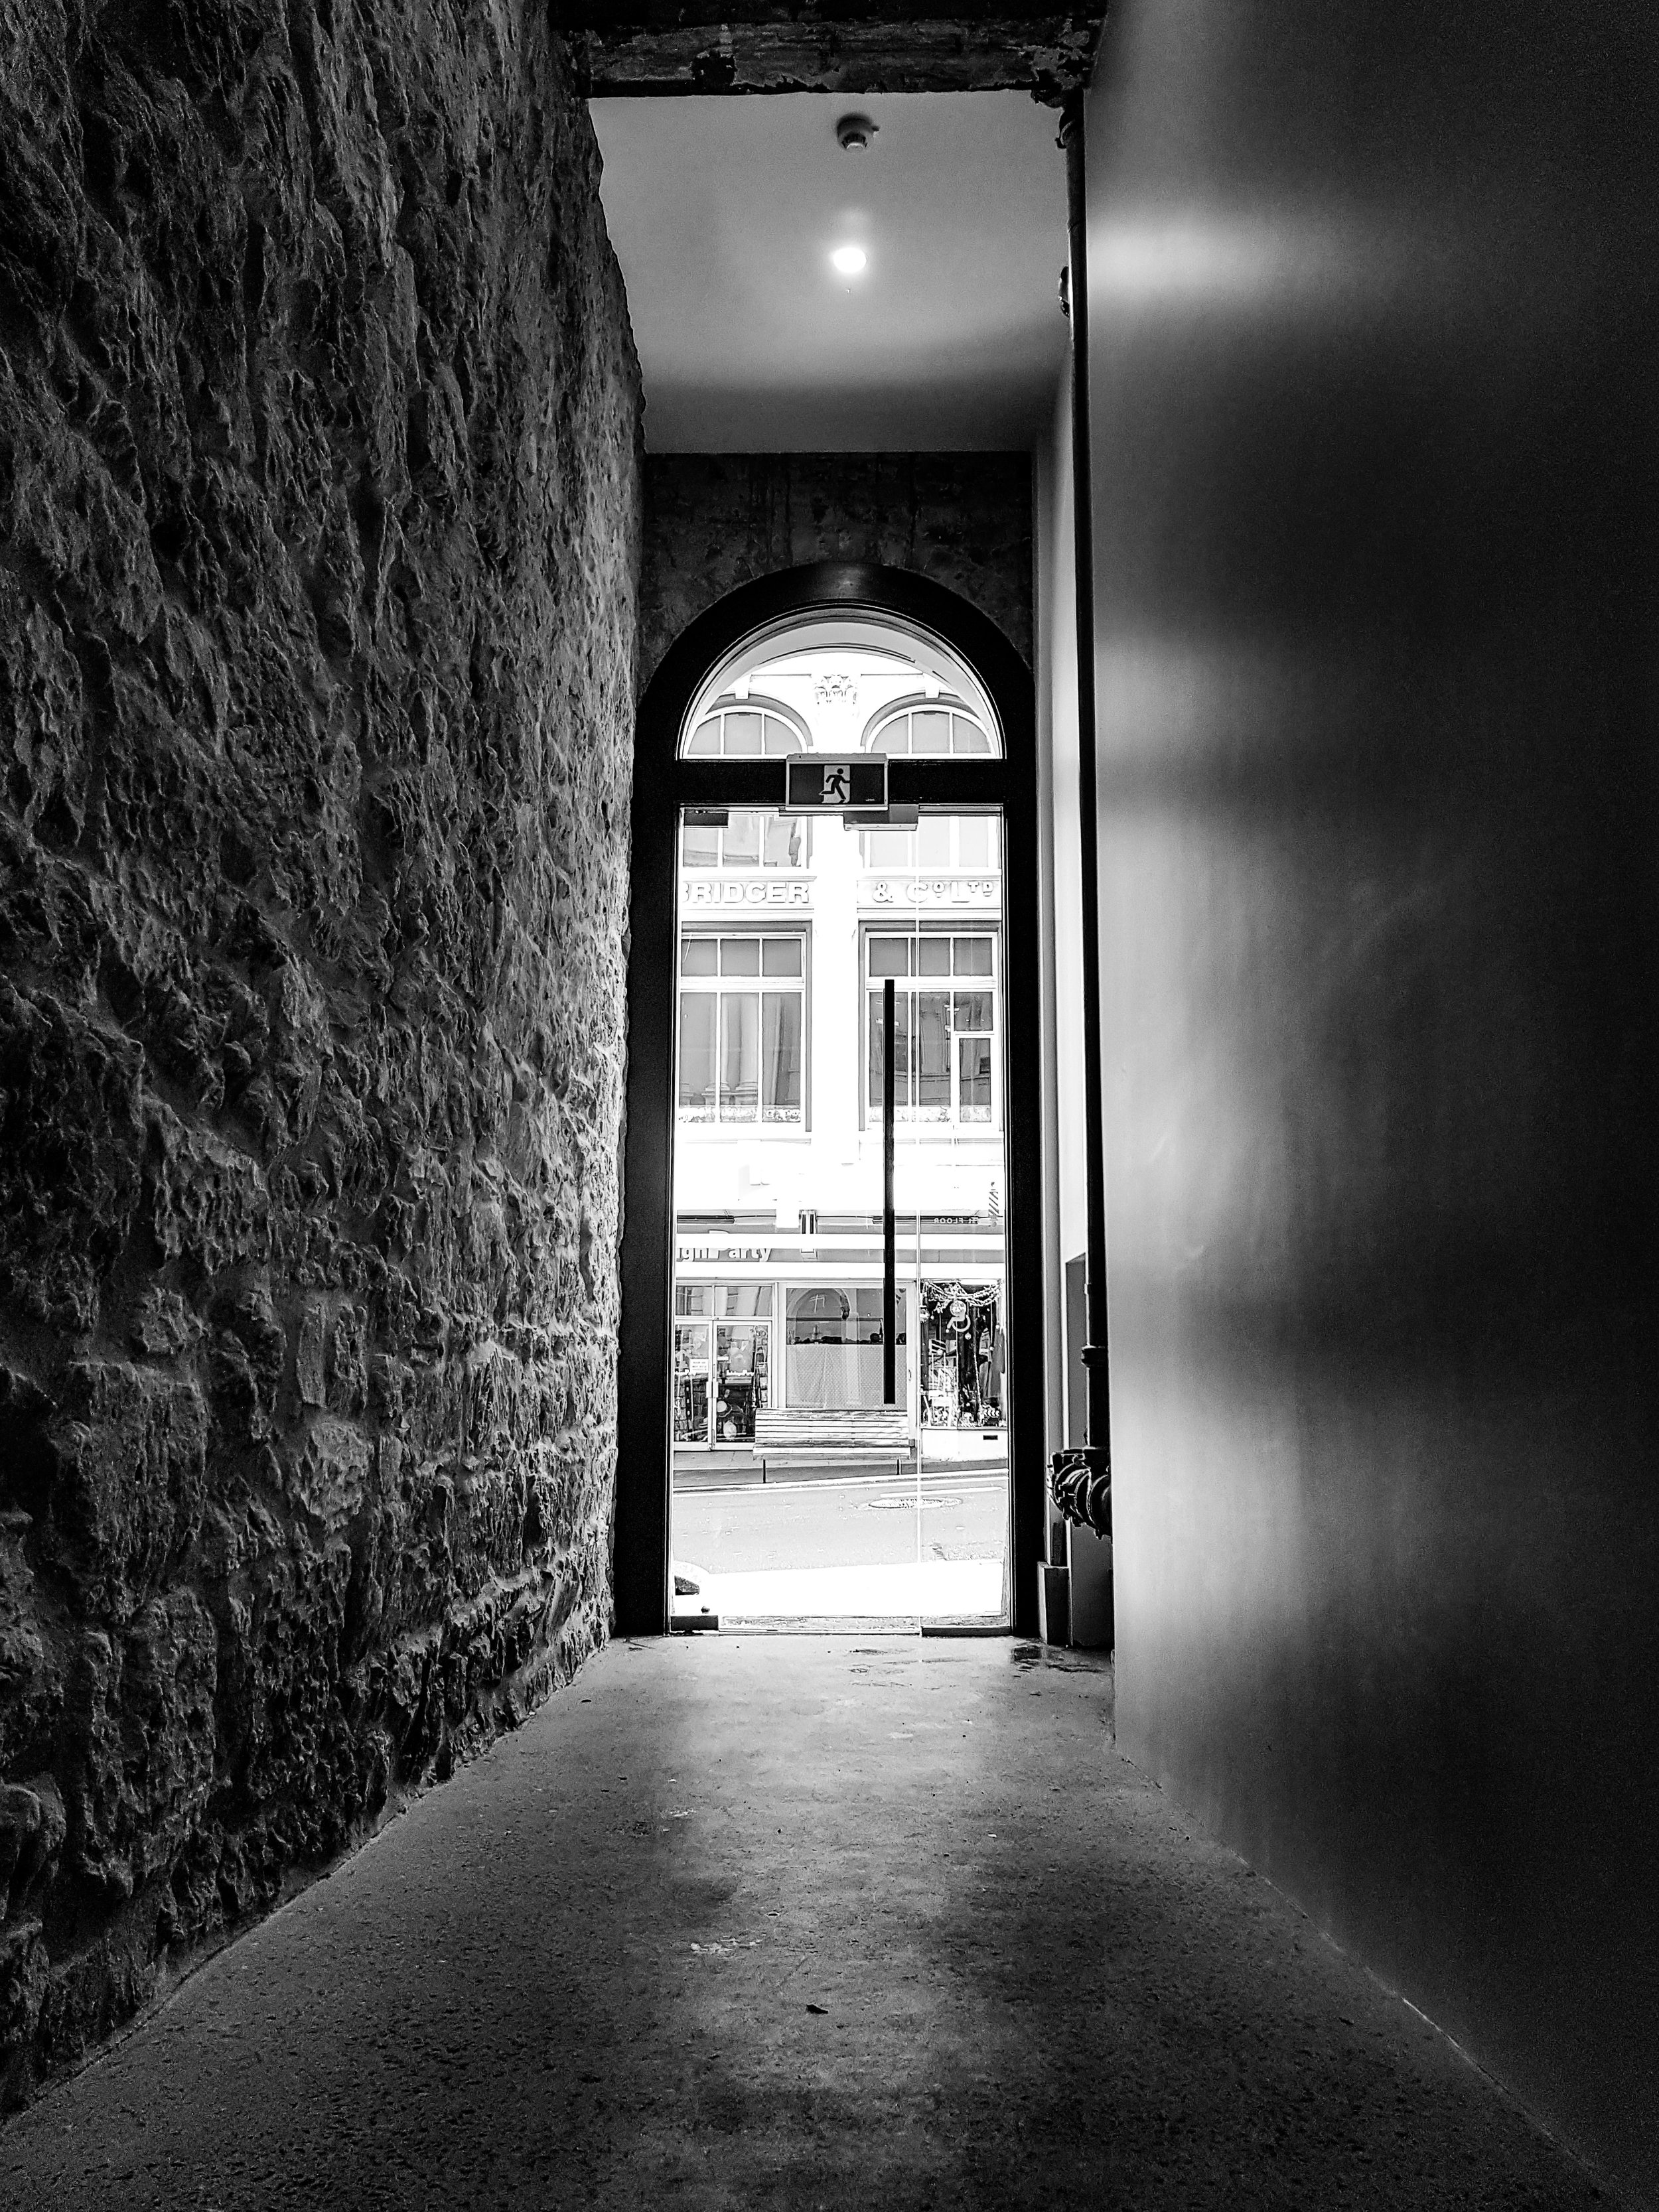 Archway to the street in Dunedin black and white